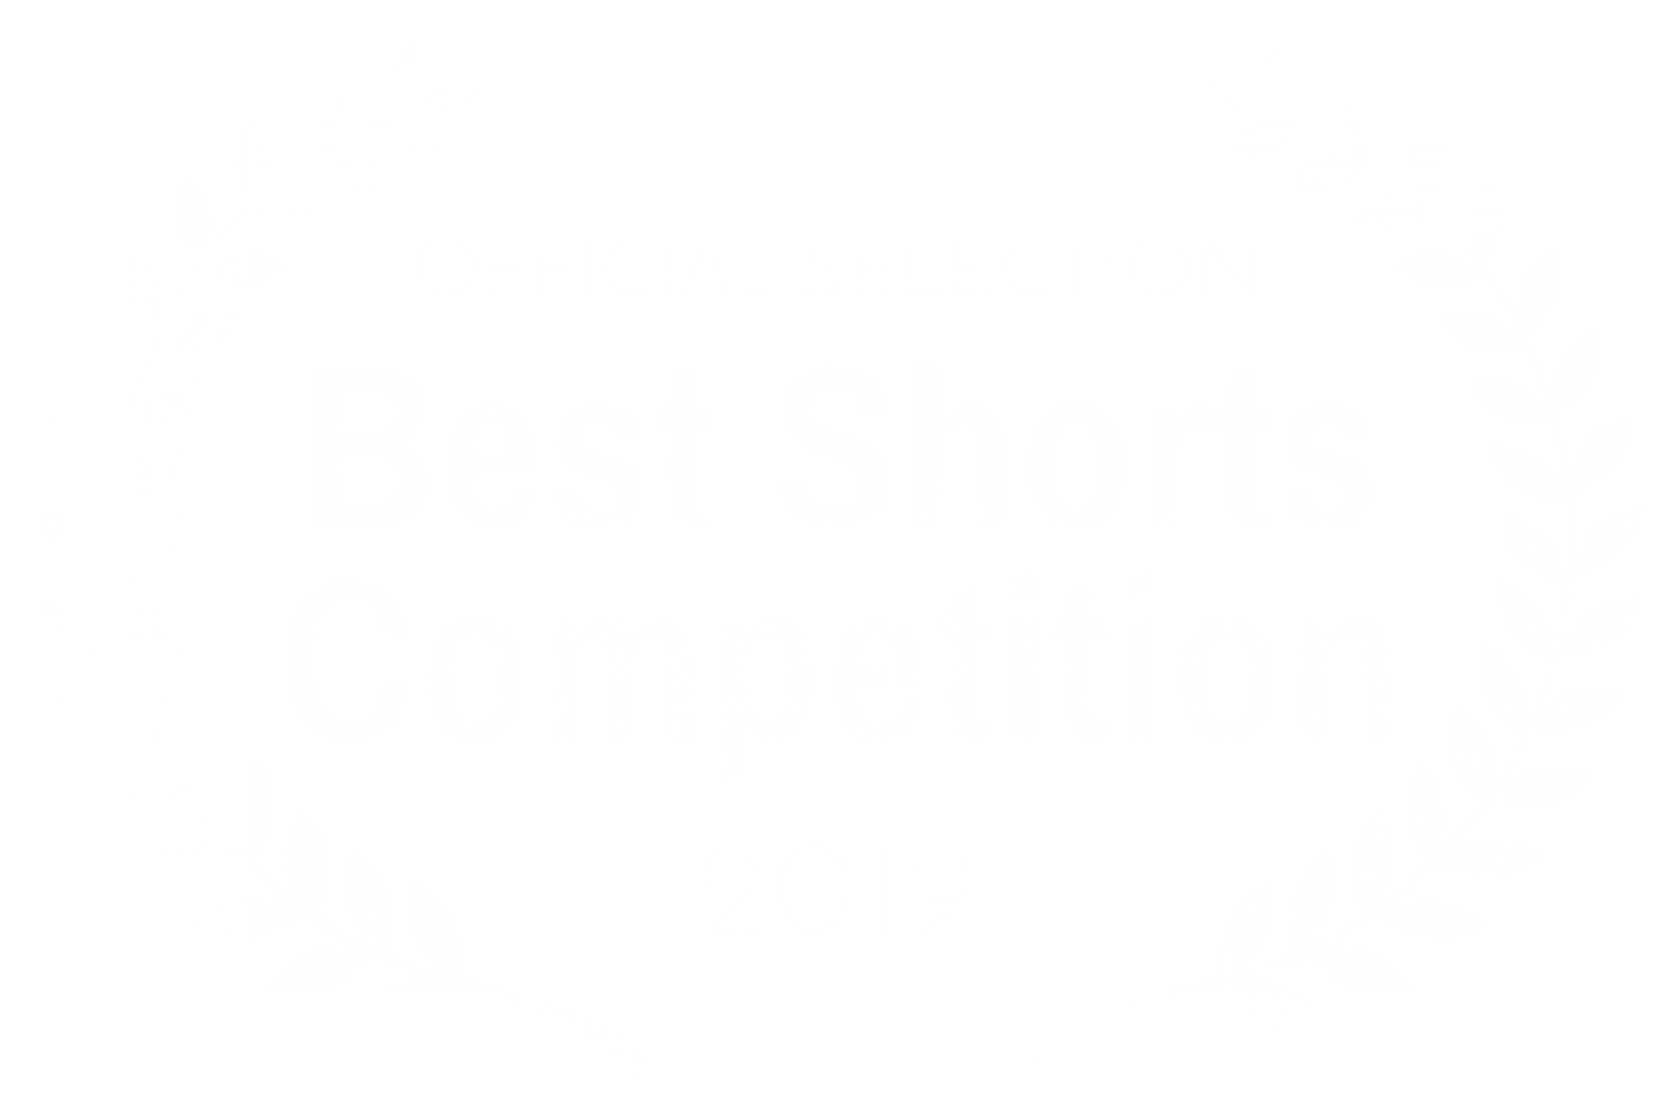 OFFICIAL SELECTION – Best Shorts Competition – 2019